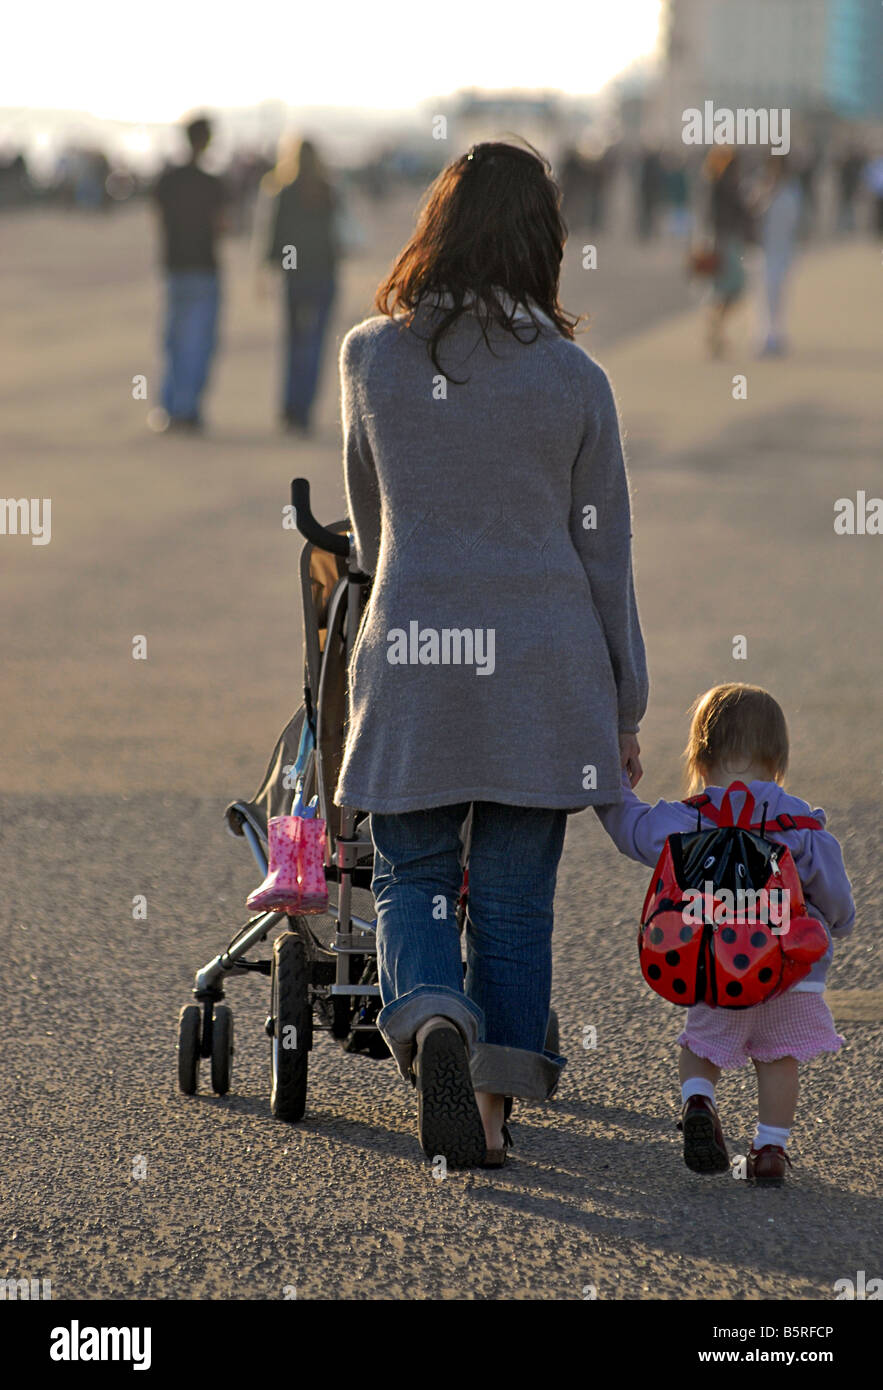 Mother with pushchair and toddler walking alongside. Hove promenade. Model released - Stock Image